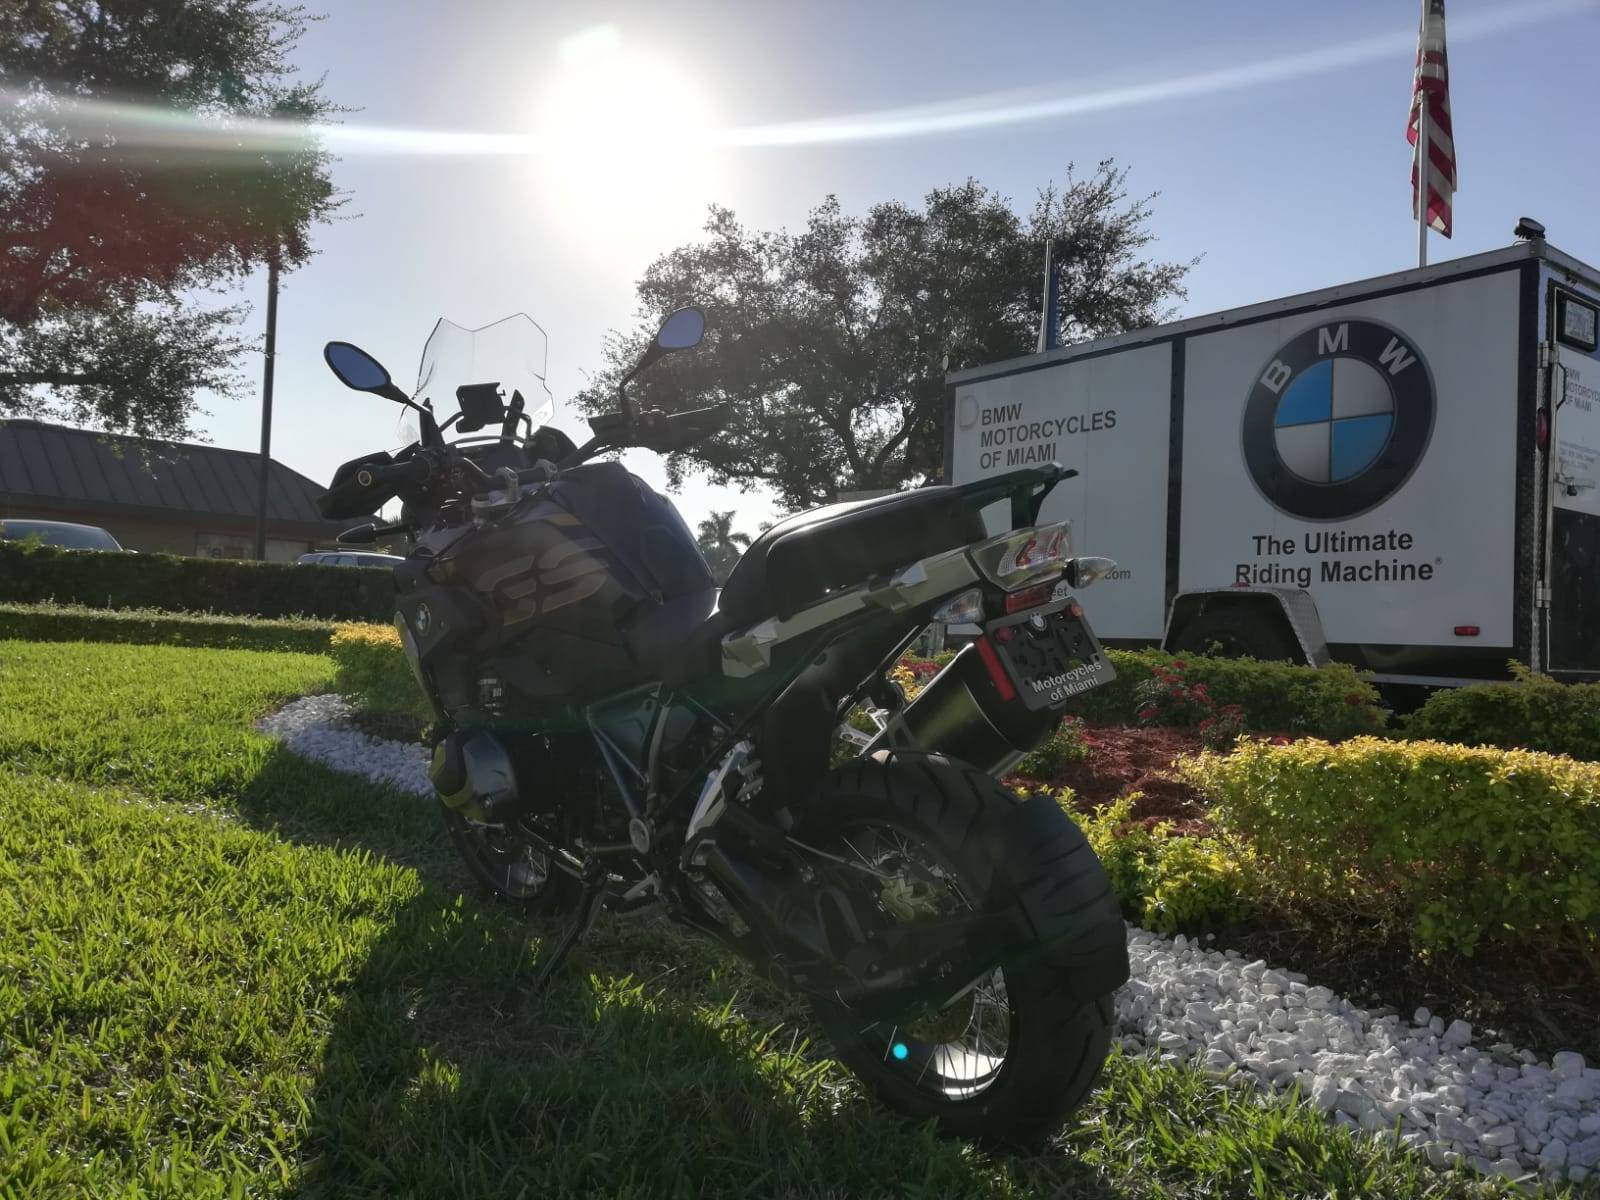 New 2019 BMW R 1250 GS for sale, BMW R 1250GS for sale, BMW Motorcycle GS, new BMW GS, Spirit of GS, BMW Motorcycles of Miami, Motorcycles of Miami, Motorcycles Miami, New Motorcycles, Used Motorcycles, pre-owned. #BMWMotorcyclesOfMiami #MotorcyclesOfMiami. - Photo 7